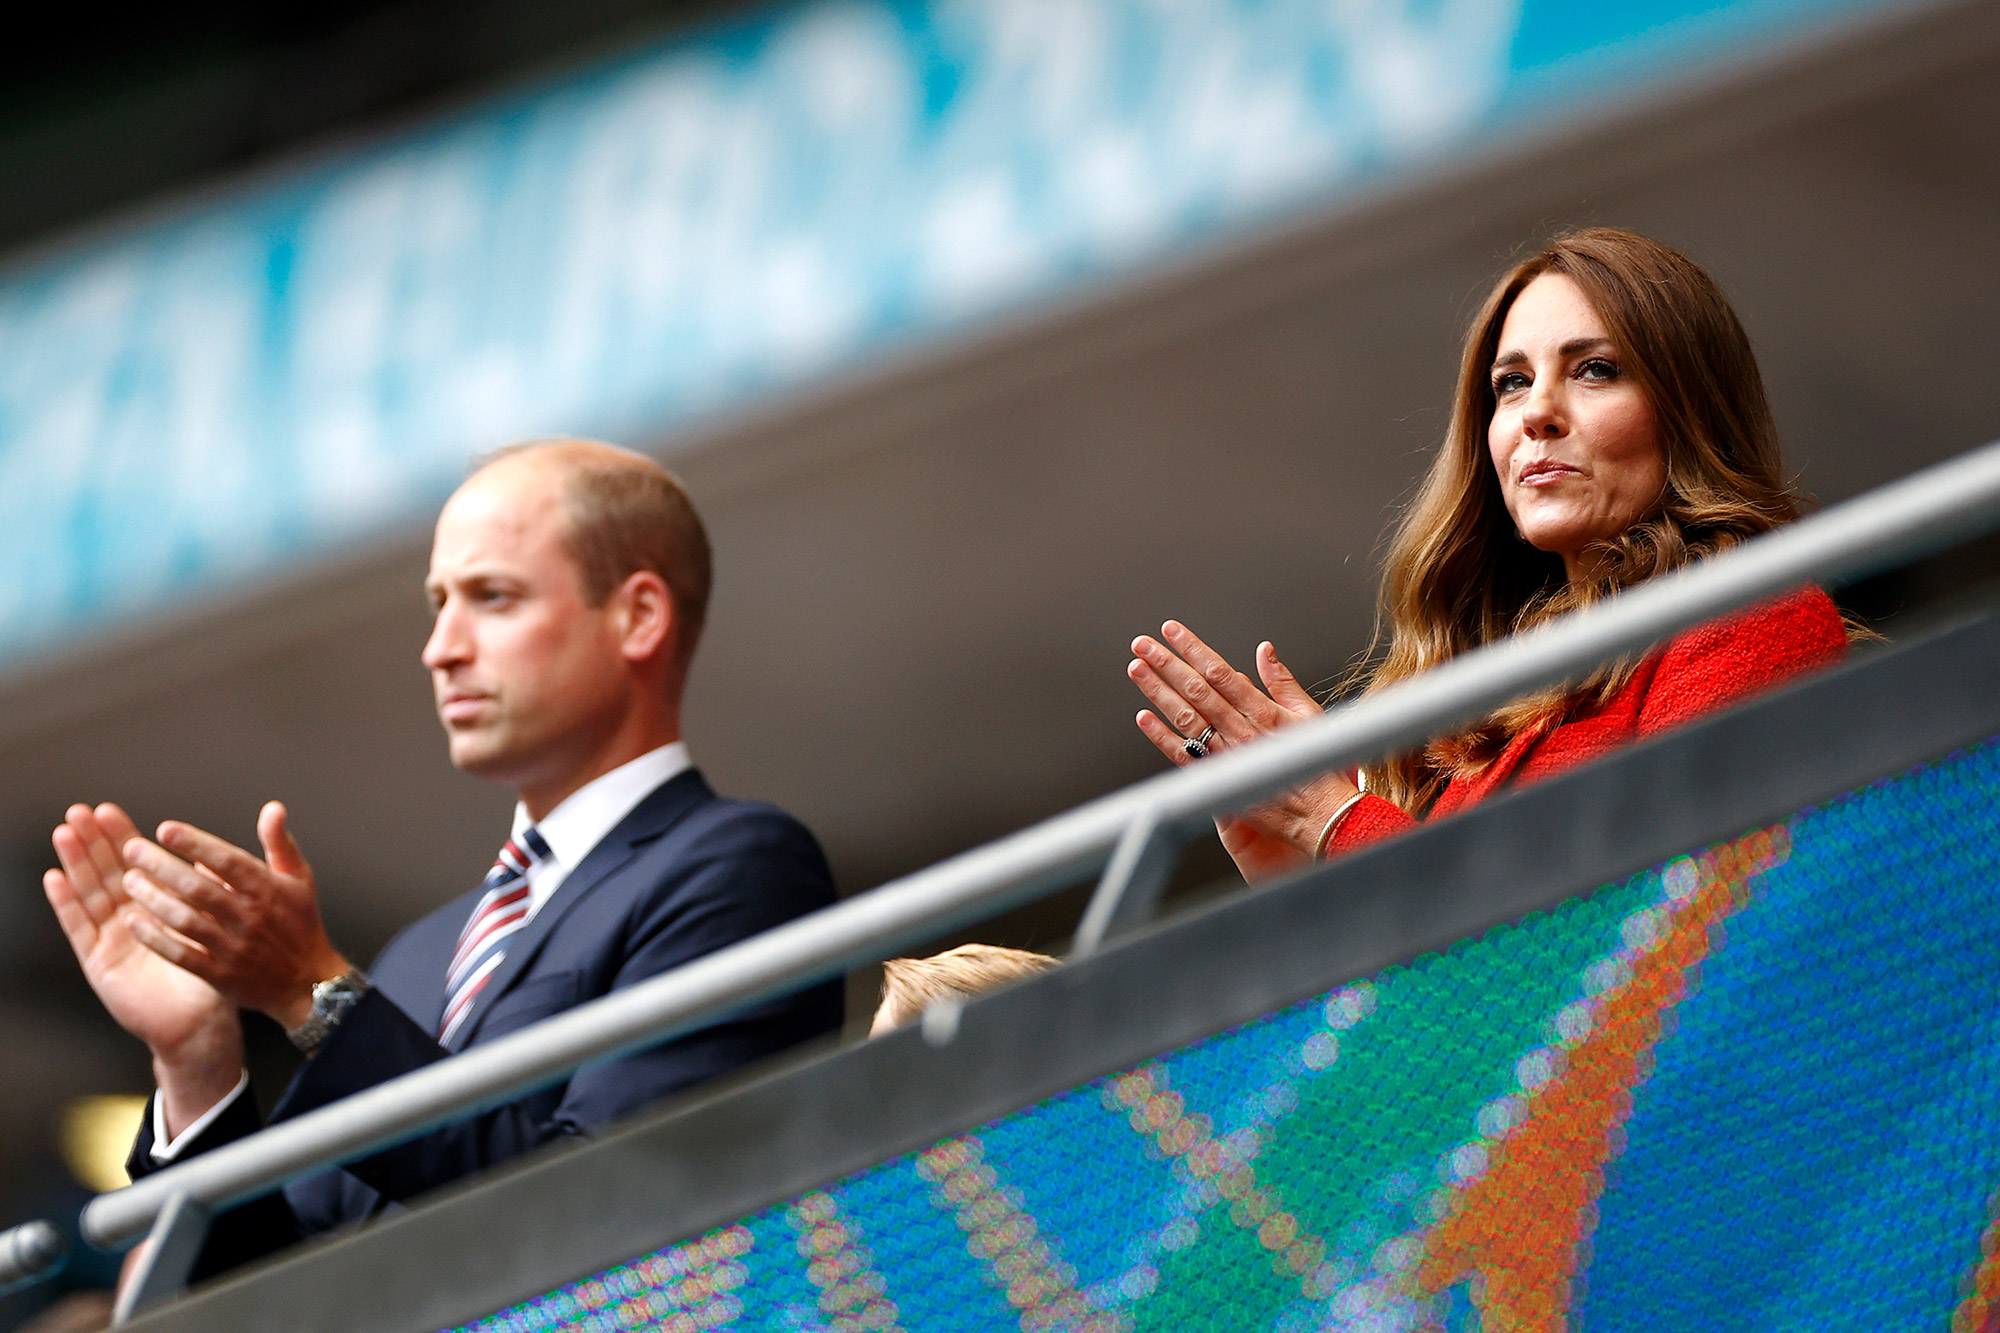 Prince William, President of the Football Association along with Catherine, Duchess of Cambridge applaud prior to the UEFA Euro 2020 Championship Round of 16 match between England and Germany at Wembley Stadium on June 29, 2021 in London